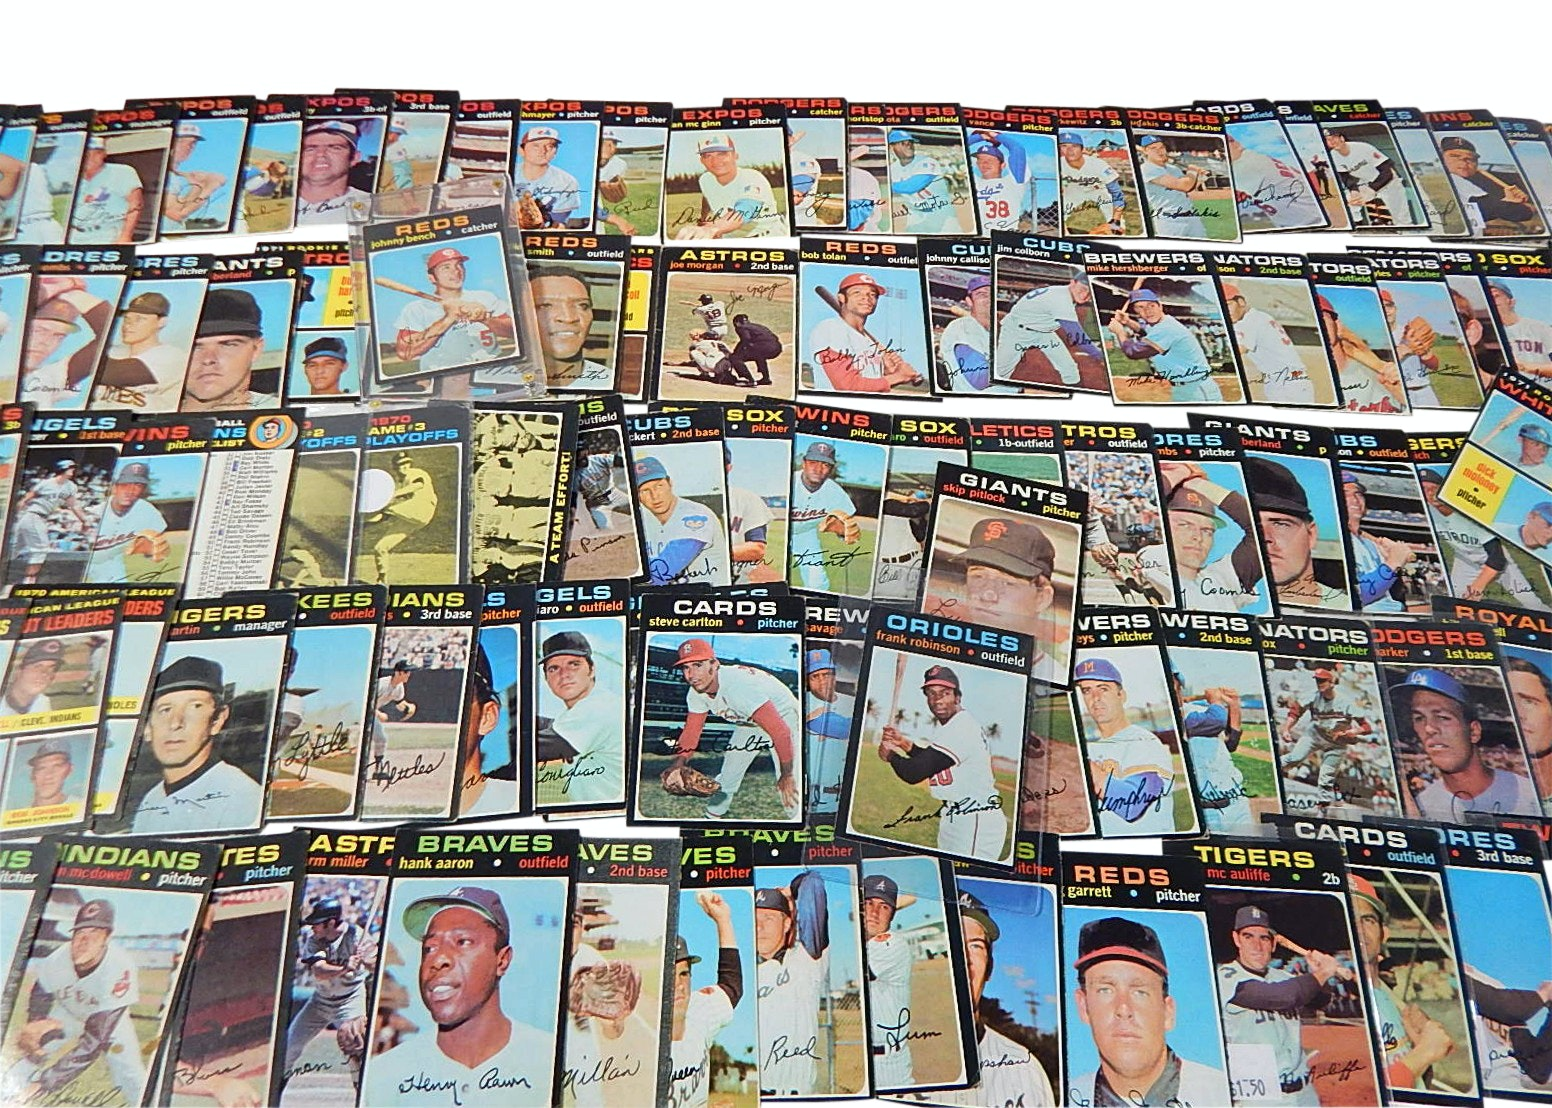 1971 Topps Baseball Card Collection with Aaron #400, Fr. Robinson and More